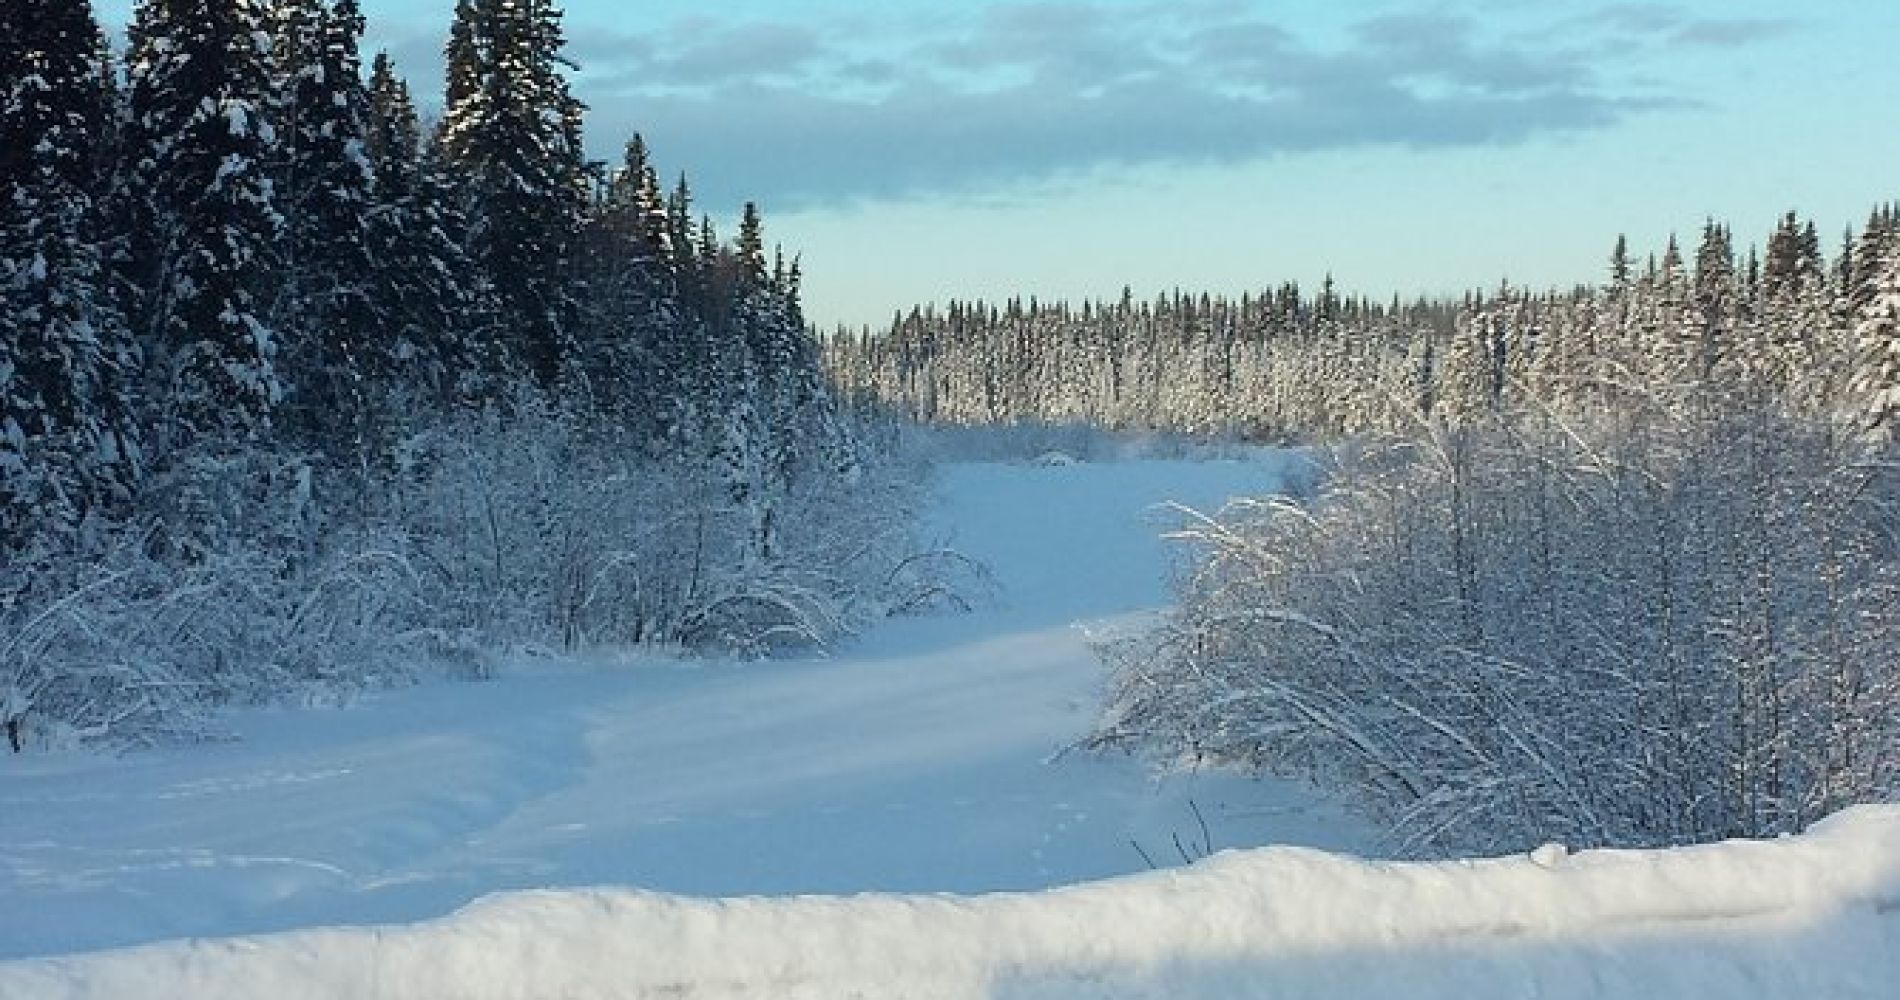 Snowshoe Tour at Chena Lakes